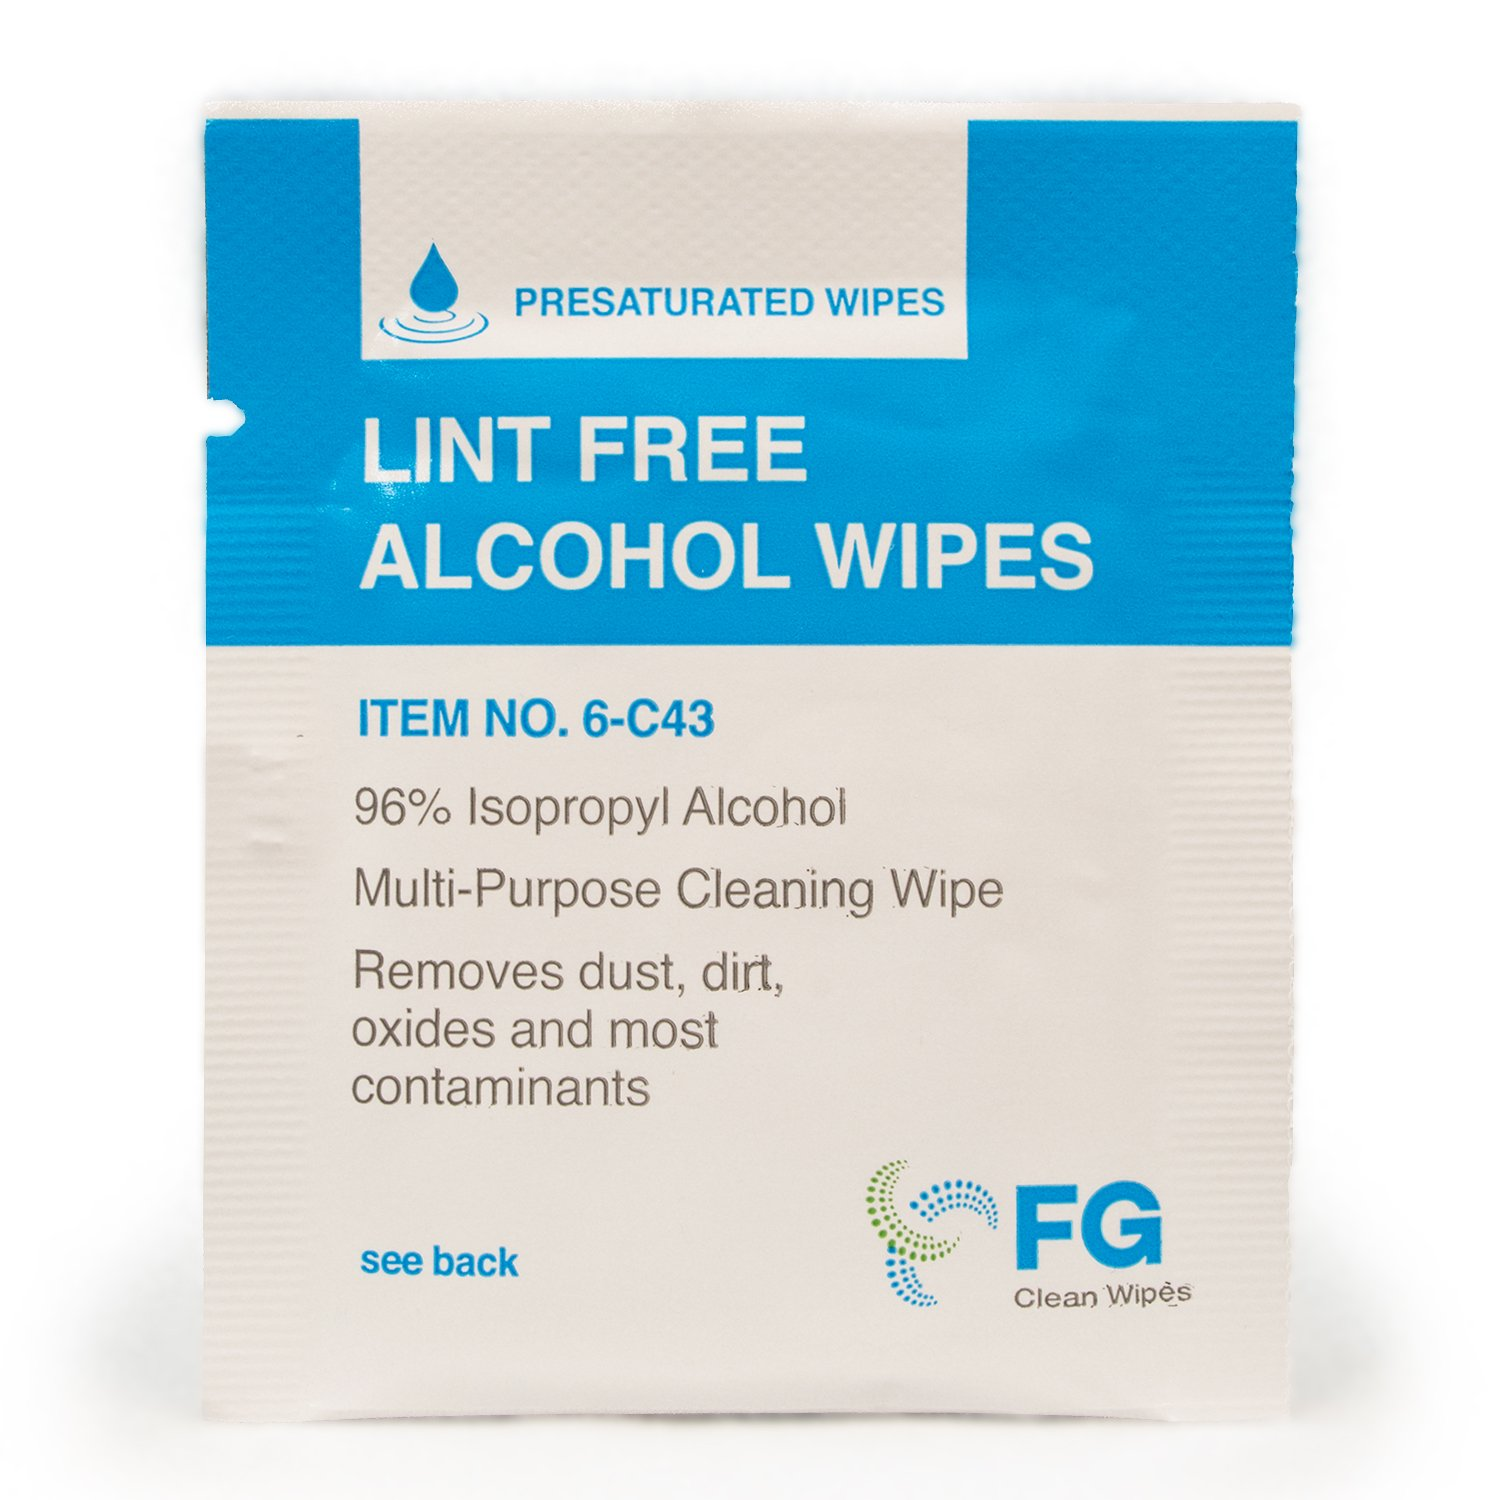 FG Clean Wipes 6-C43 Lint Free Presaturated Wipes (Box of 60)